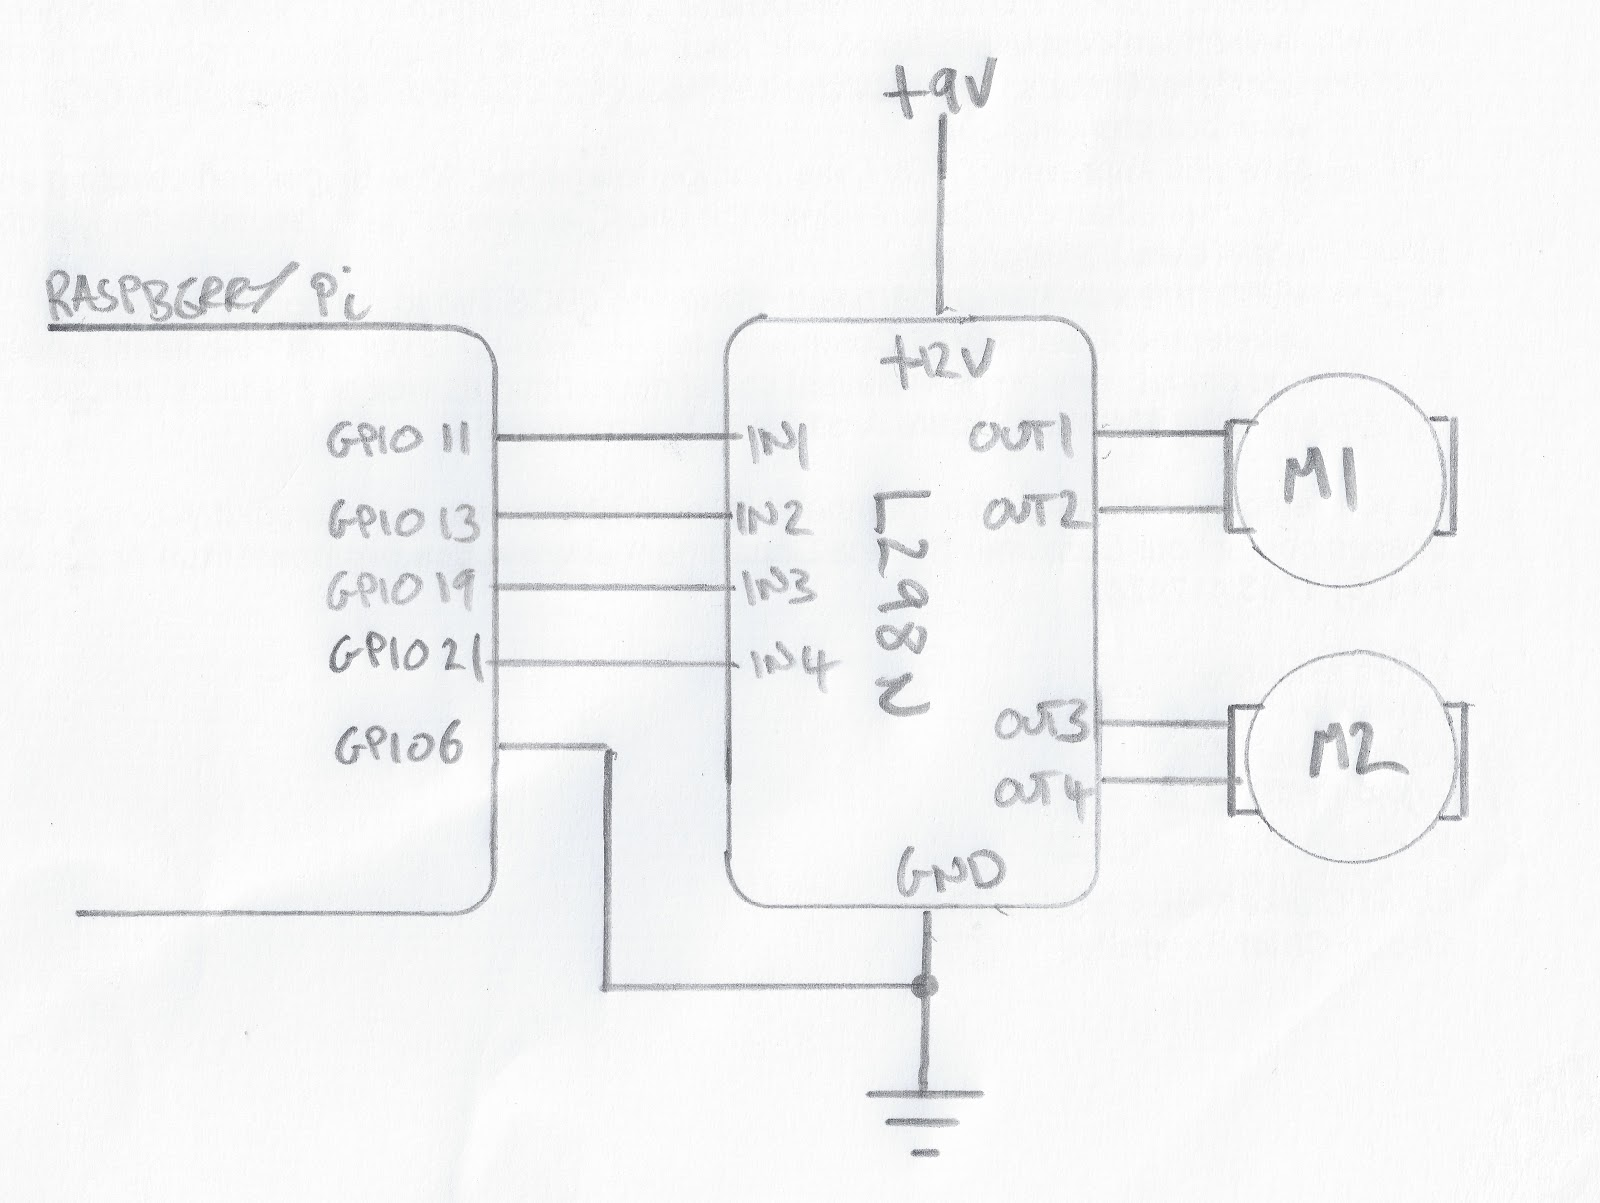 Raspberry Pi Mit L298n Double H Bridge Johannes Petz L298 Circuit Diagram Er Hat In Dieser